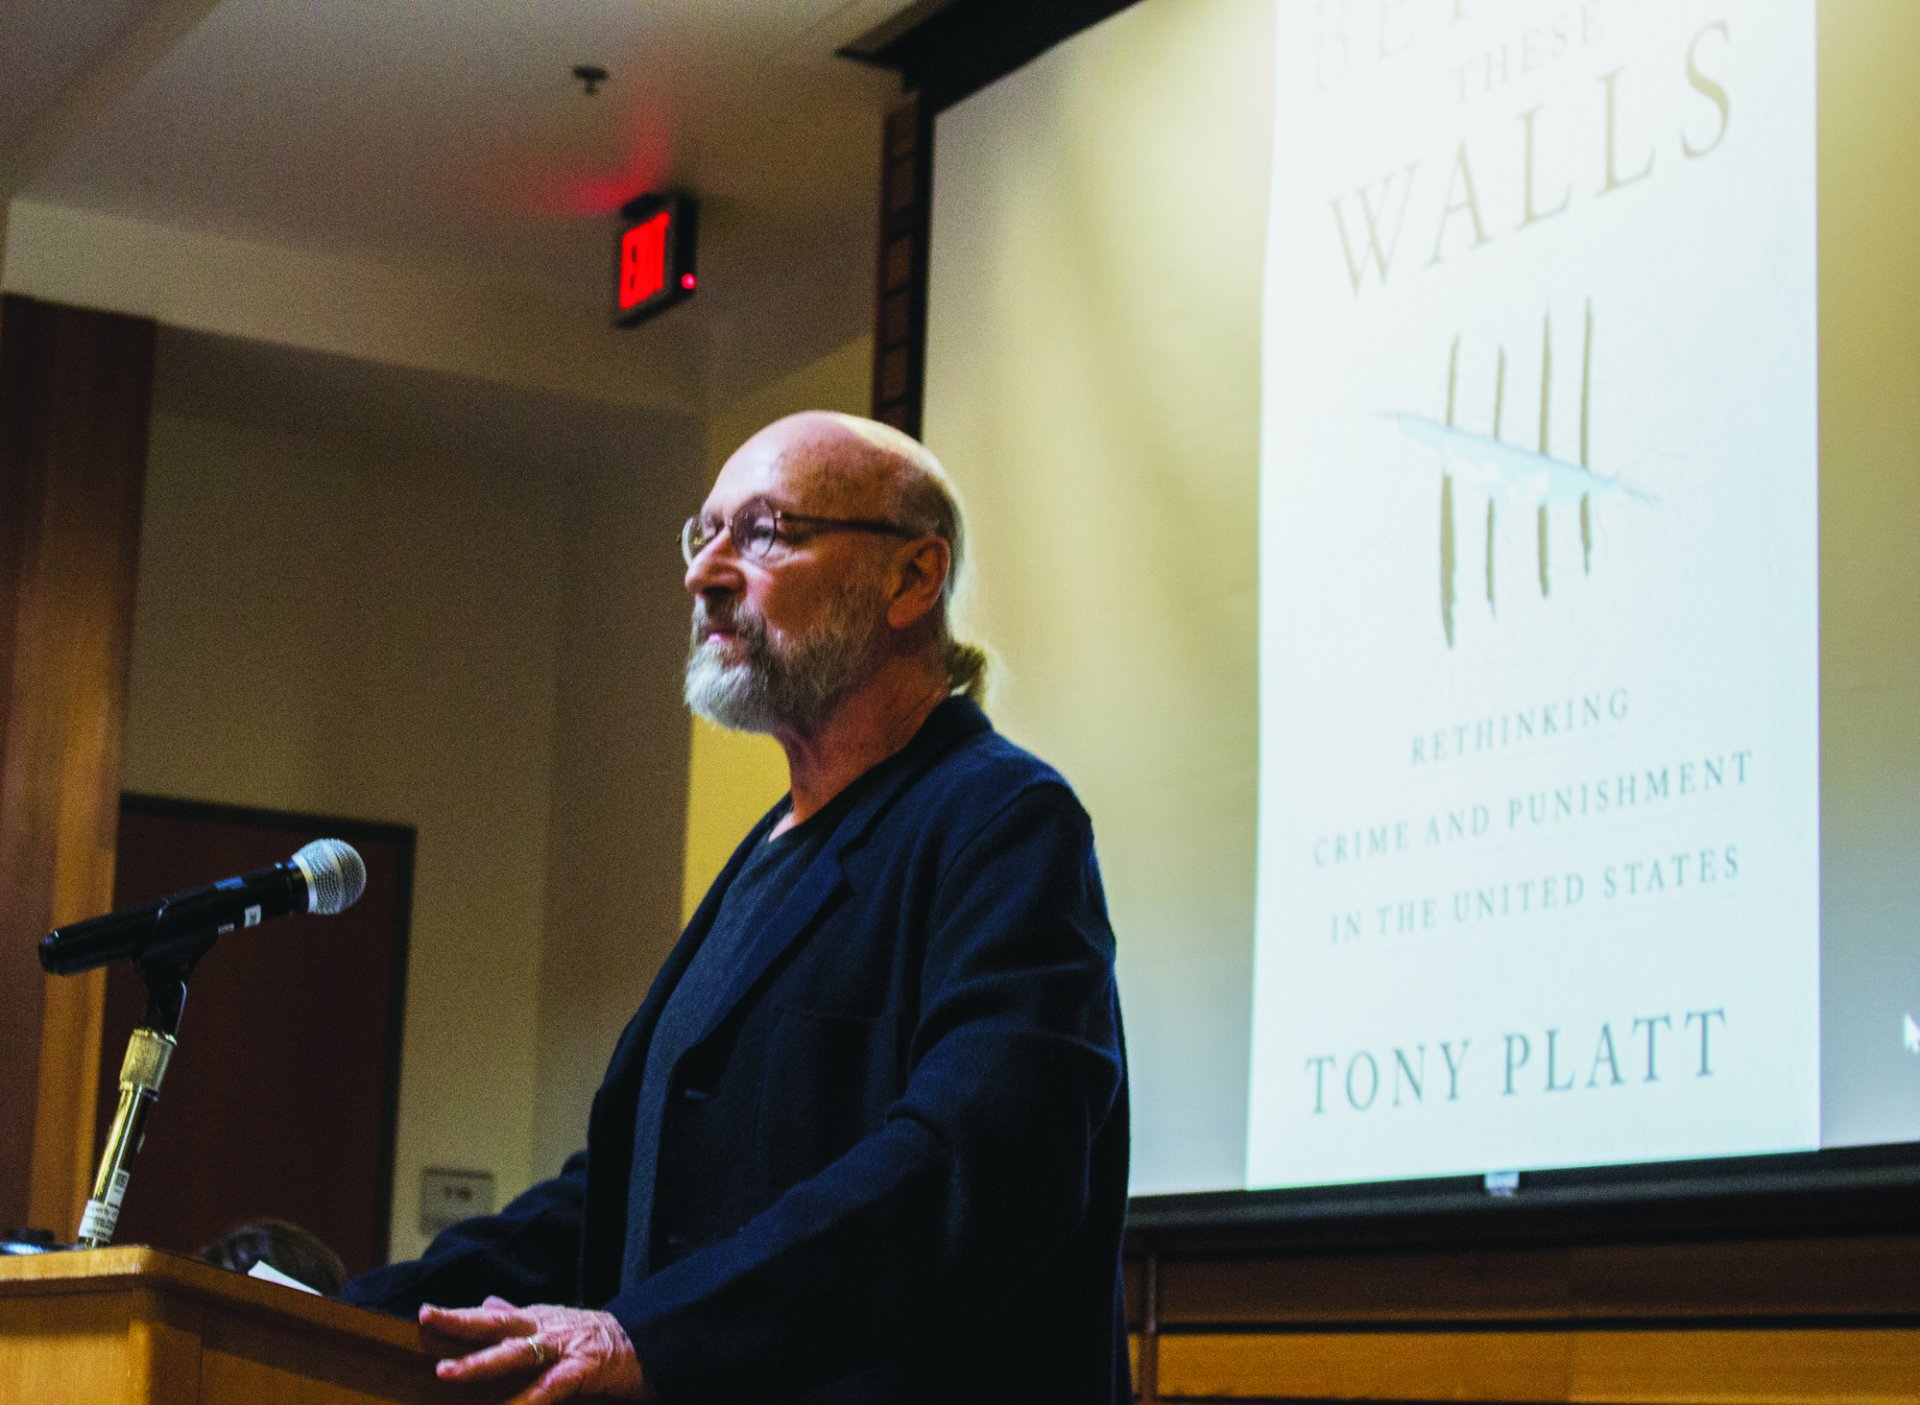 Tony Platt, author of 'Beyond These Walls: Rethinking Crime and Punishment in the United States, speaks to students, professors, and community memebrs in The Native American Forum on February 14 2019. By: T.William Wallin